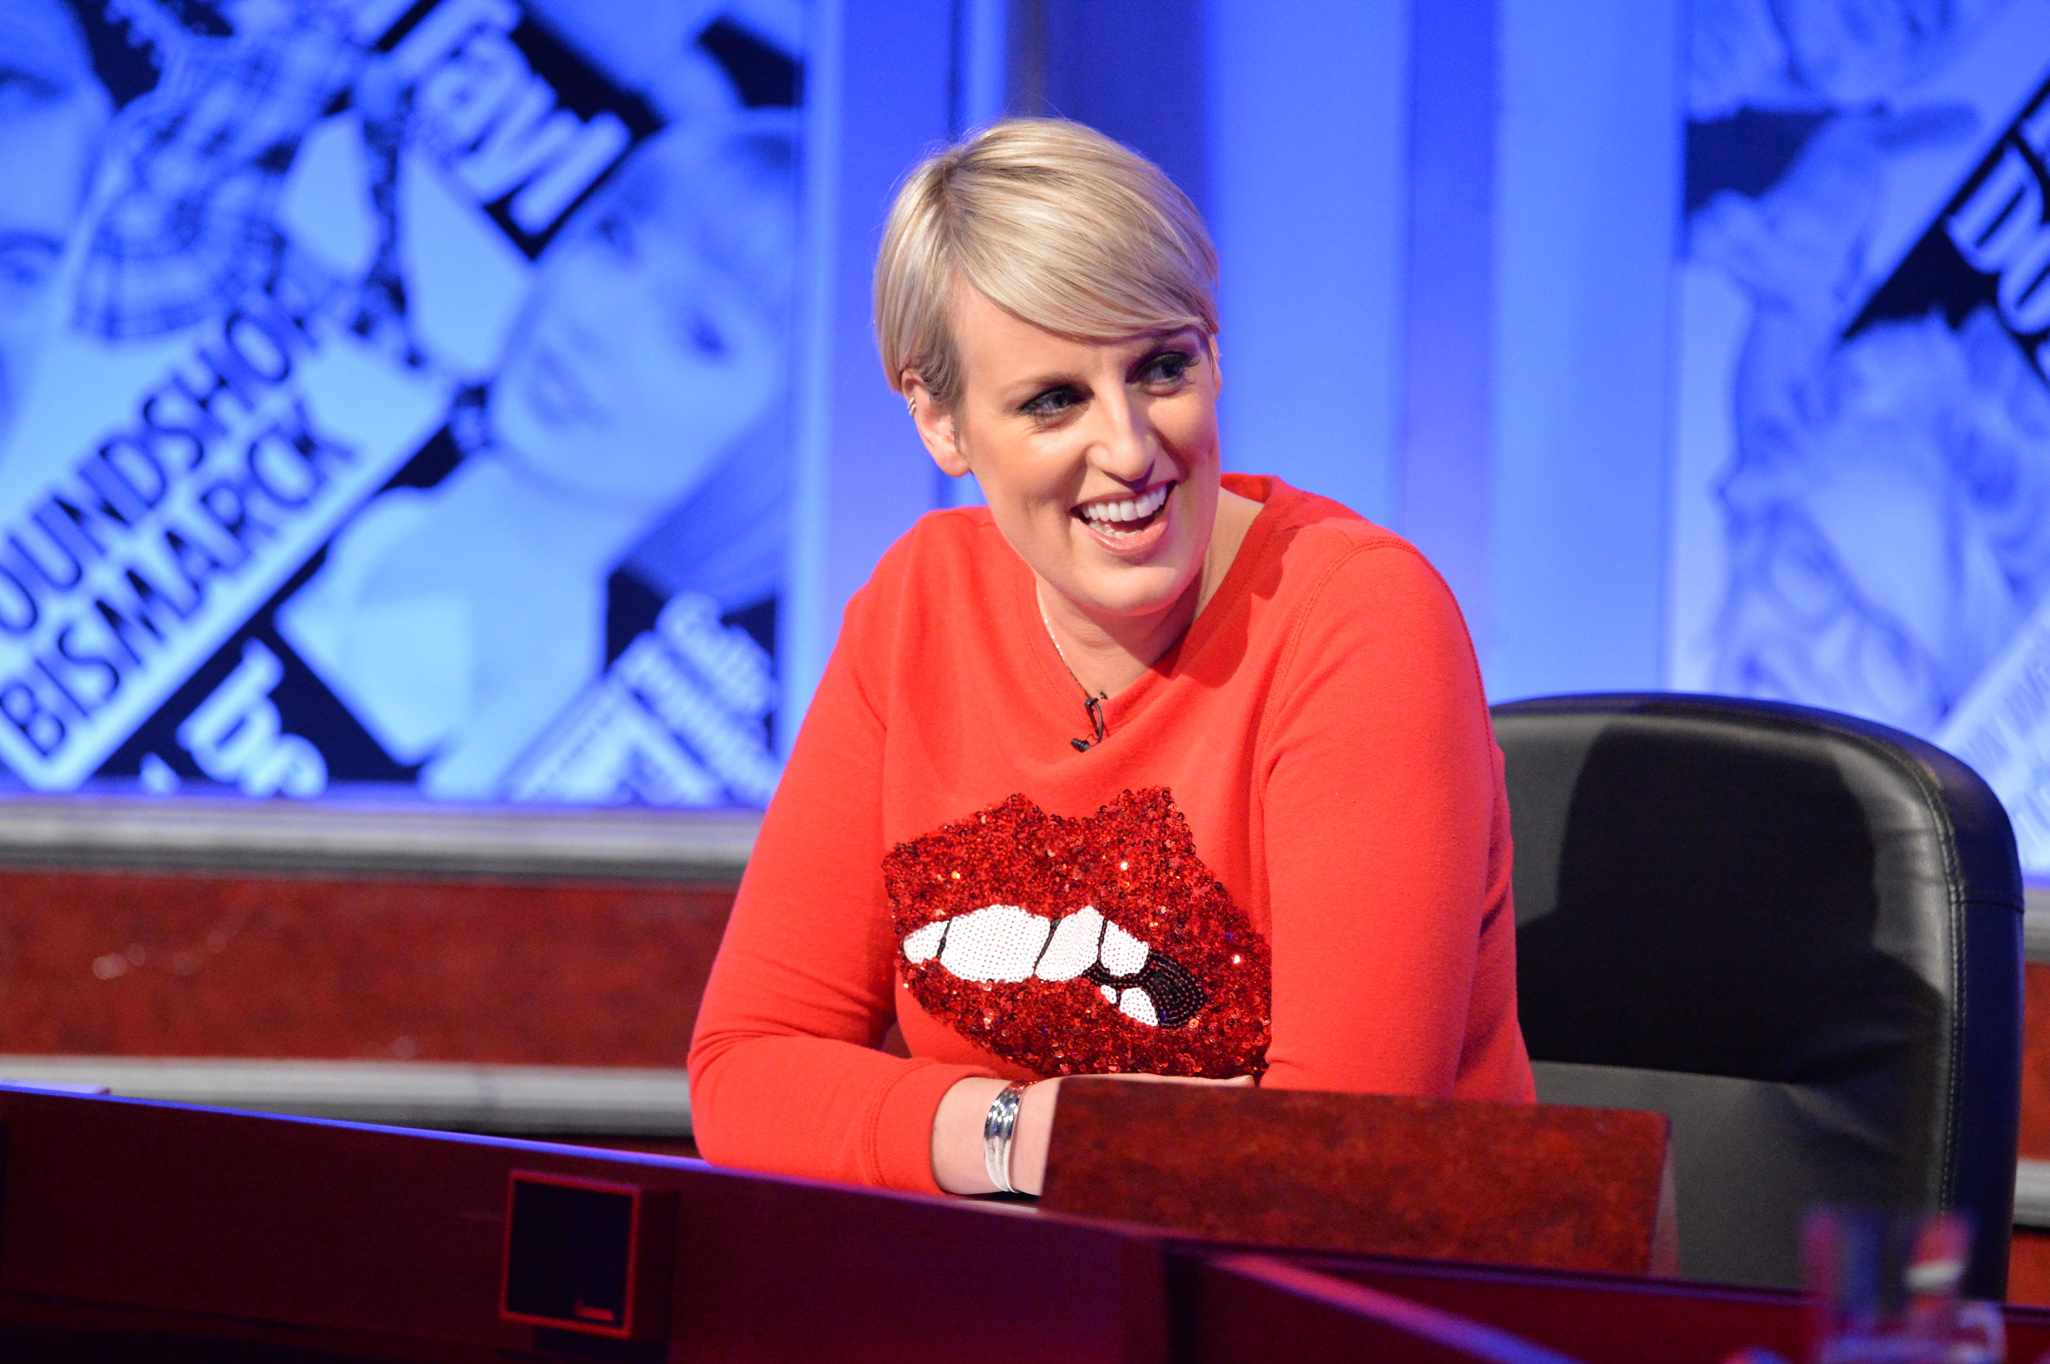 BBC have I Got News For You Steph McGovern (BBC)